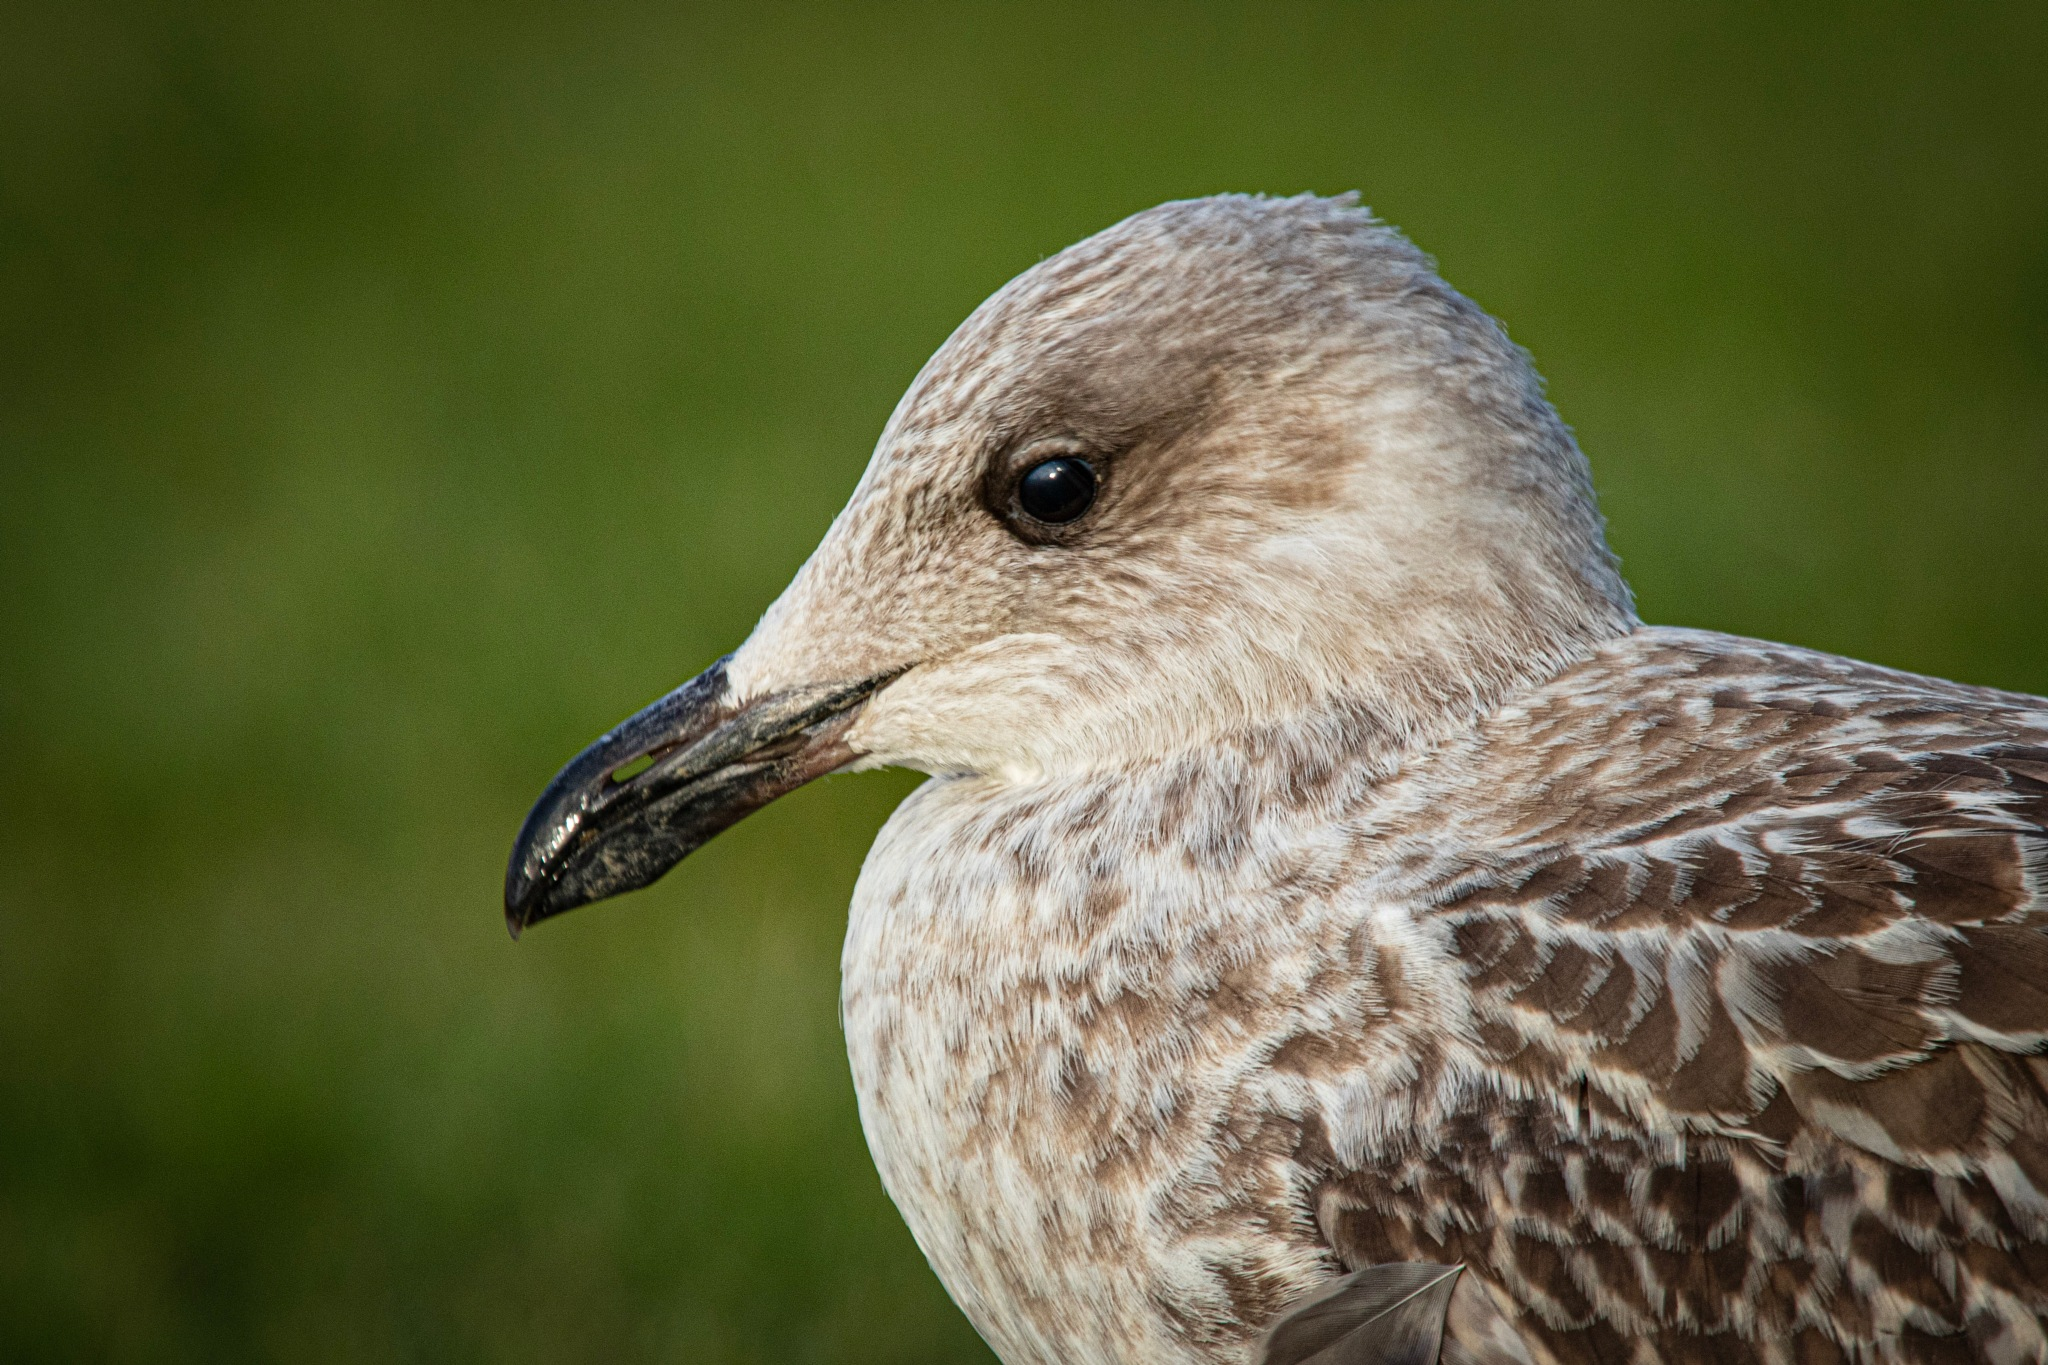 Young Seagull by Tessy S